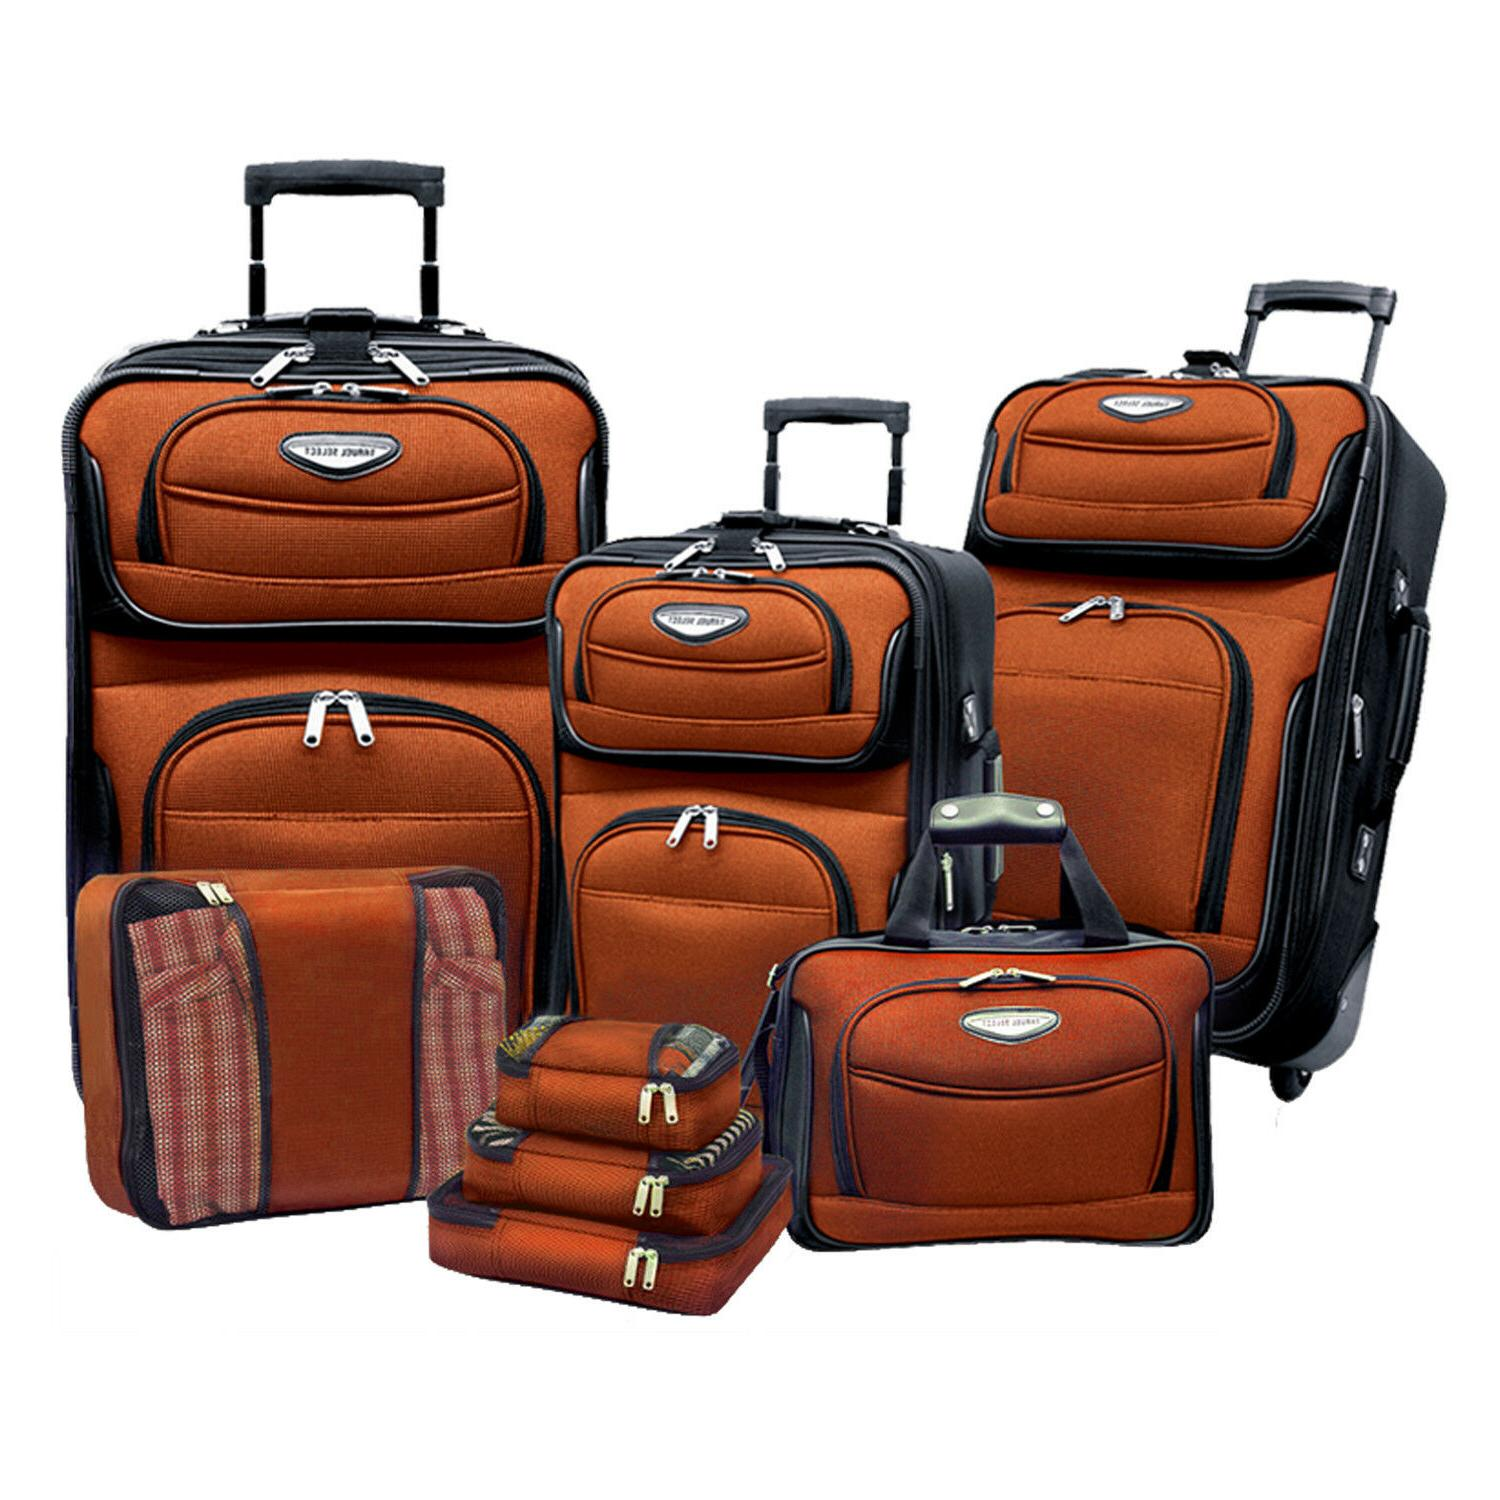 Amsterdam II 8-piece Luggage Set